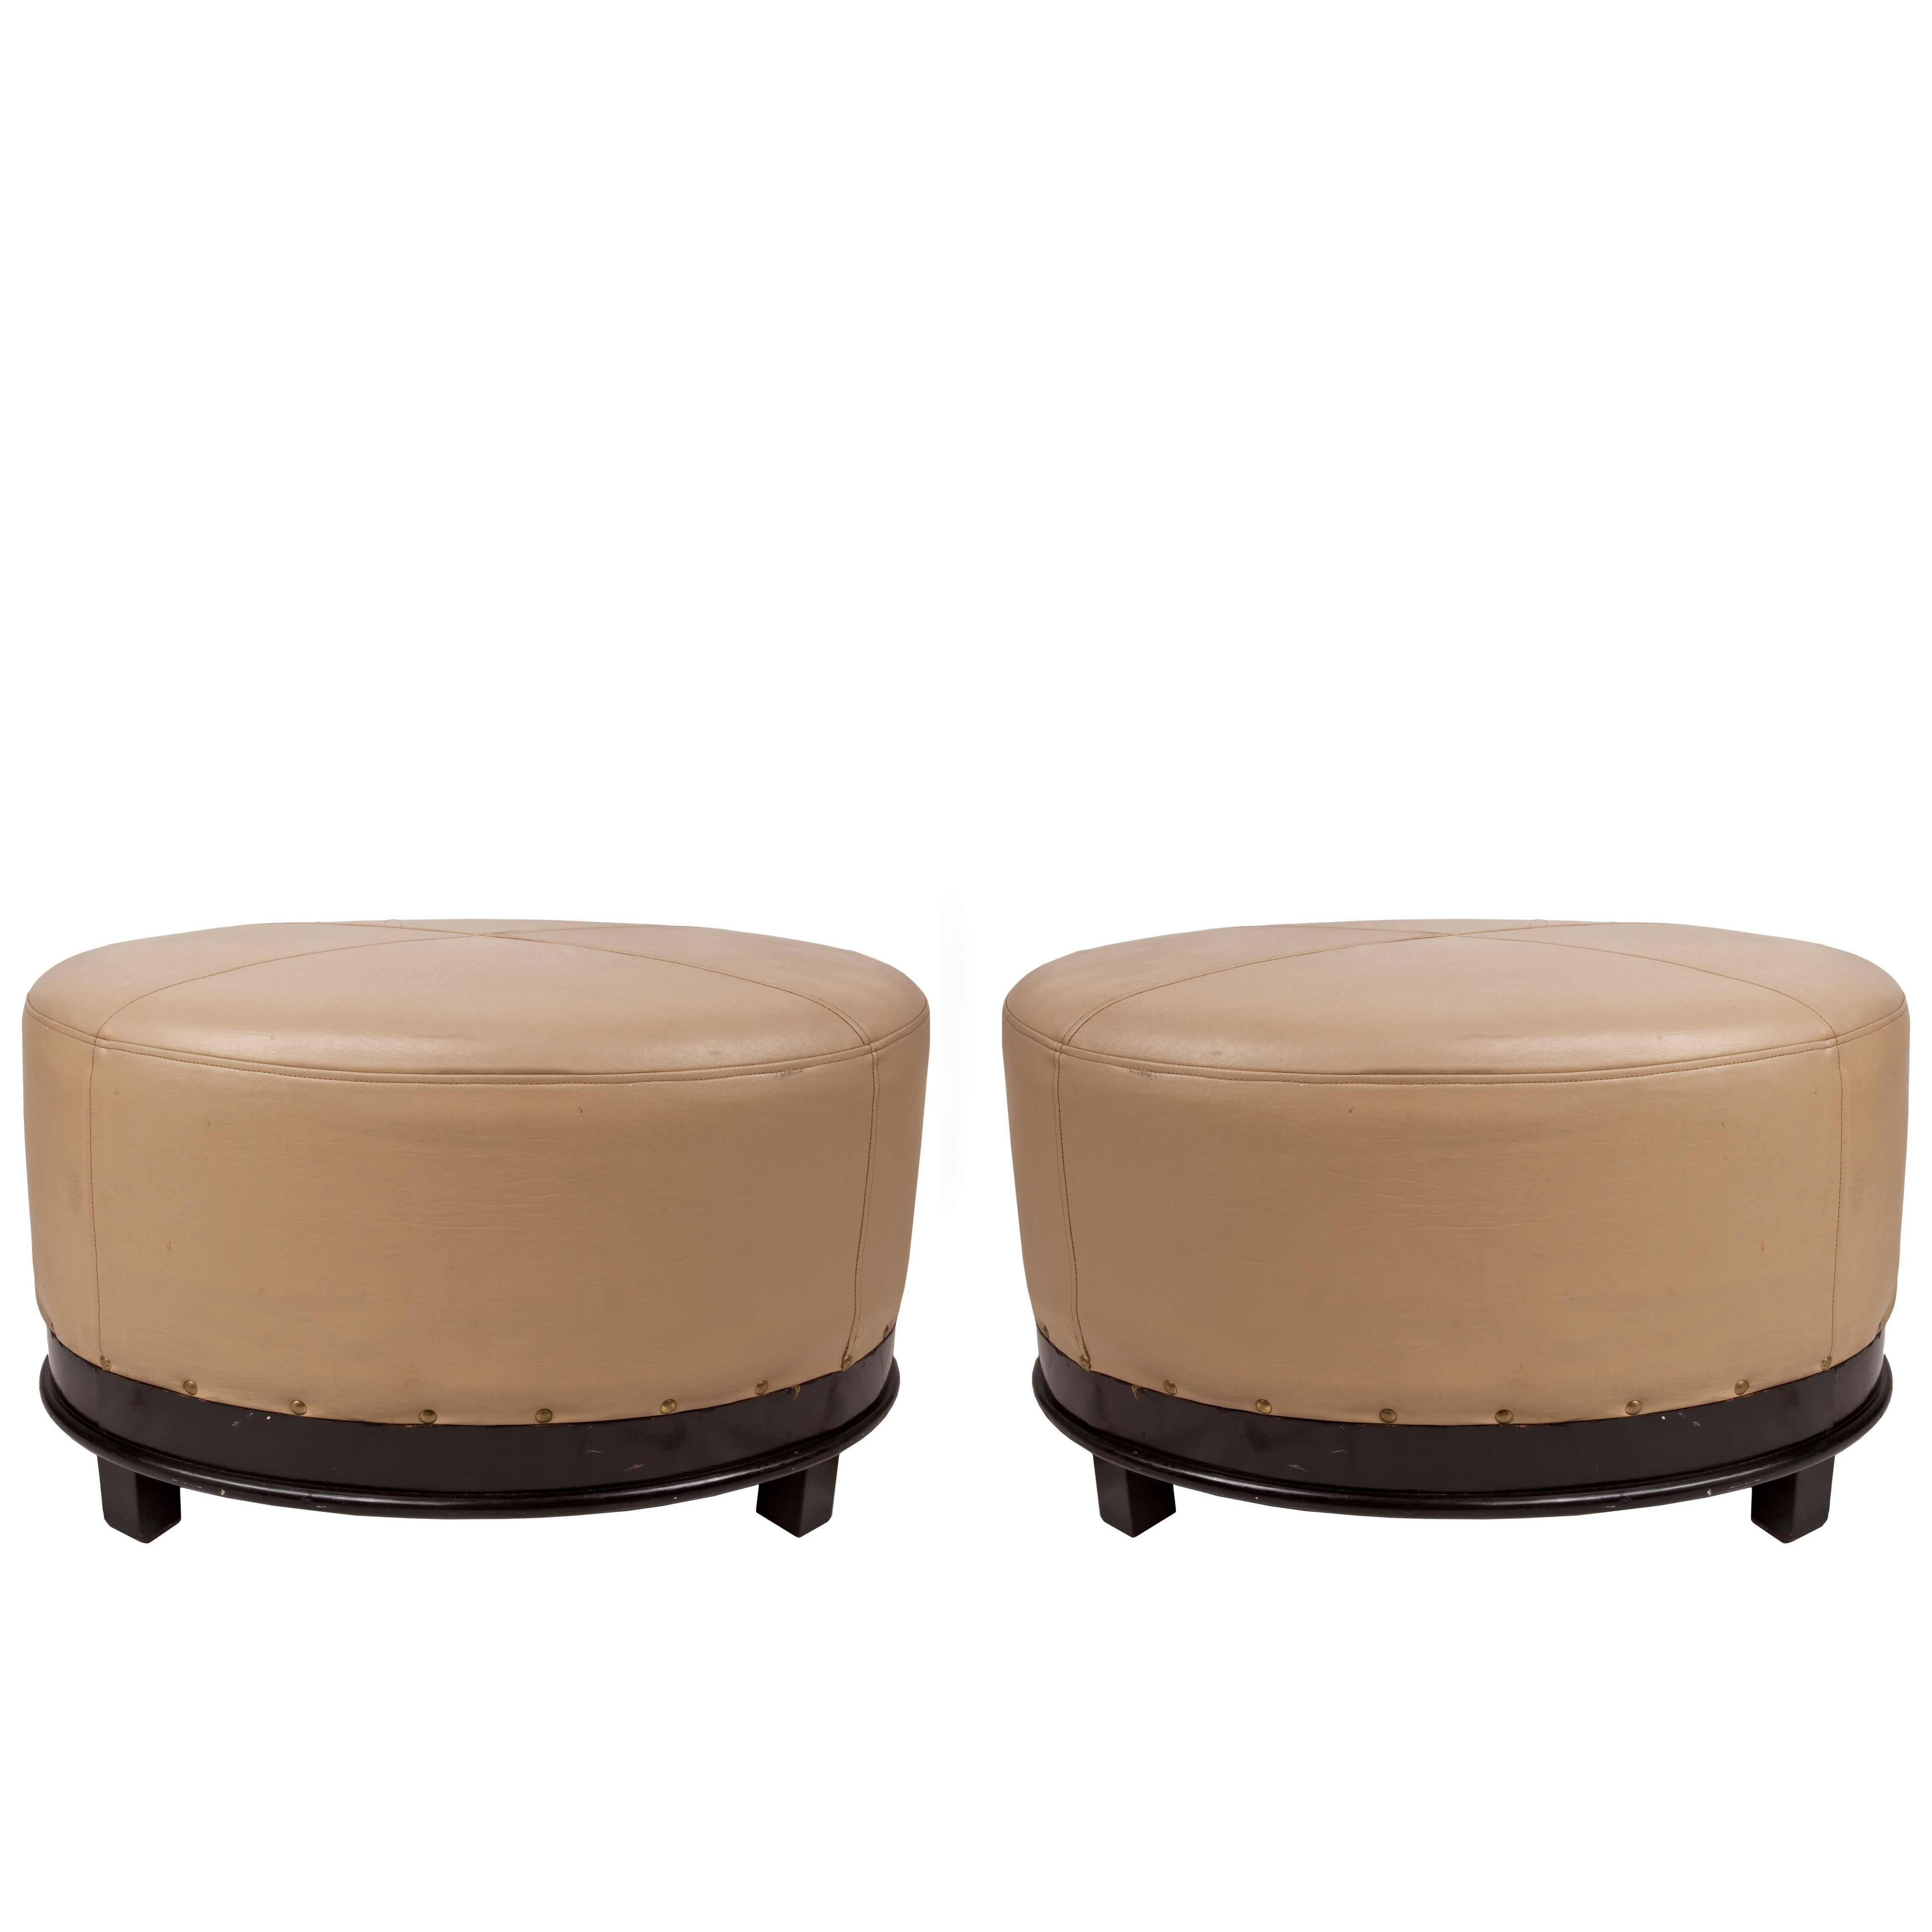 Enjoyable Antique And Vintage Ottomans And Poufs 2 858 For Sale At Forskolin Free Trial Chair Design Images Forskolin Free Trialorg